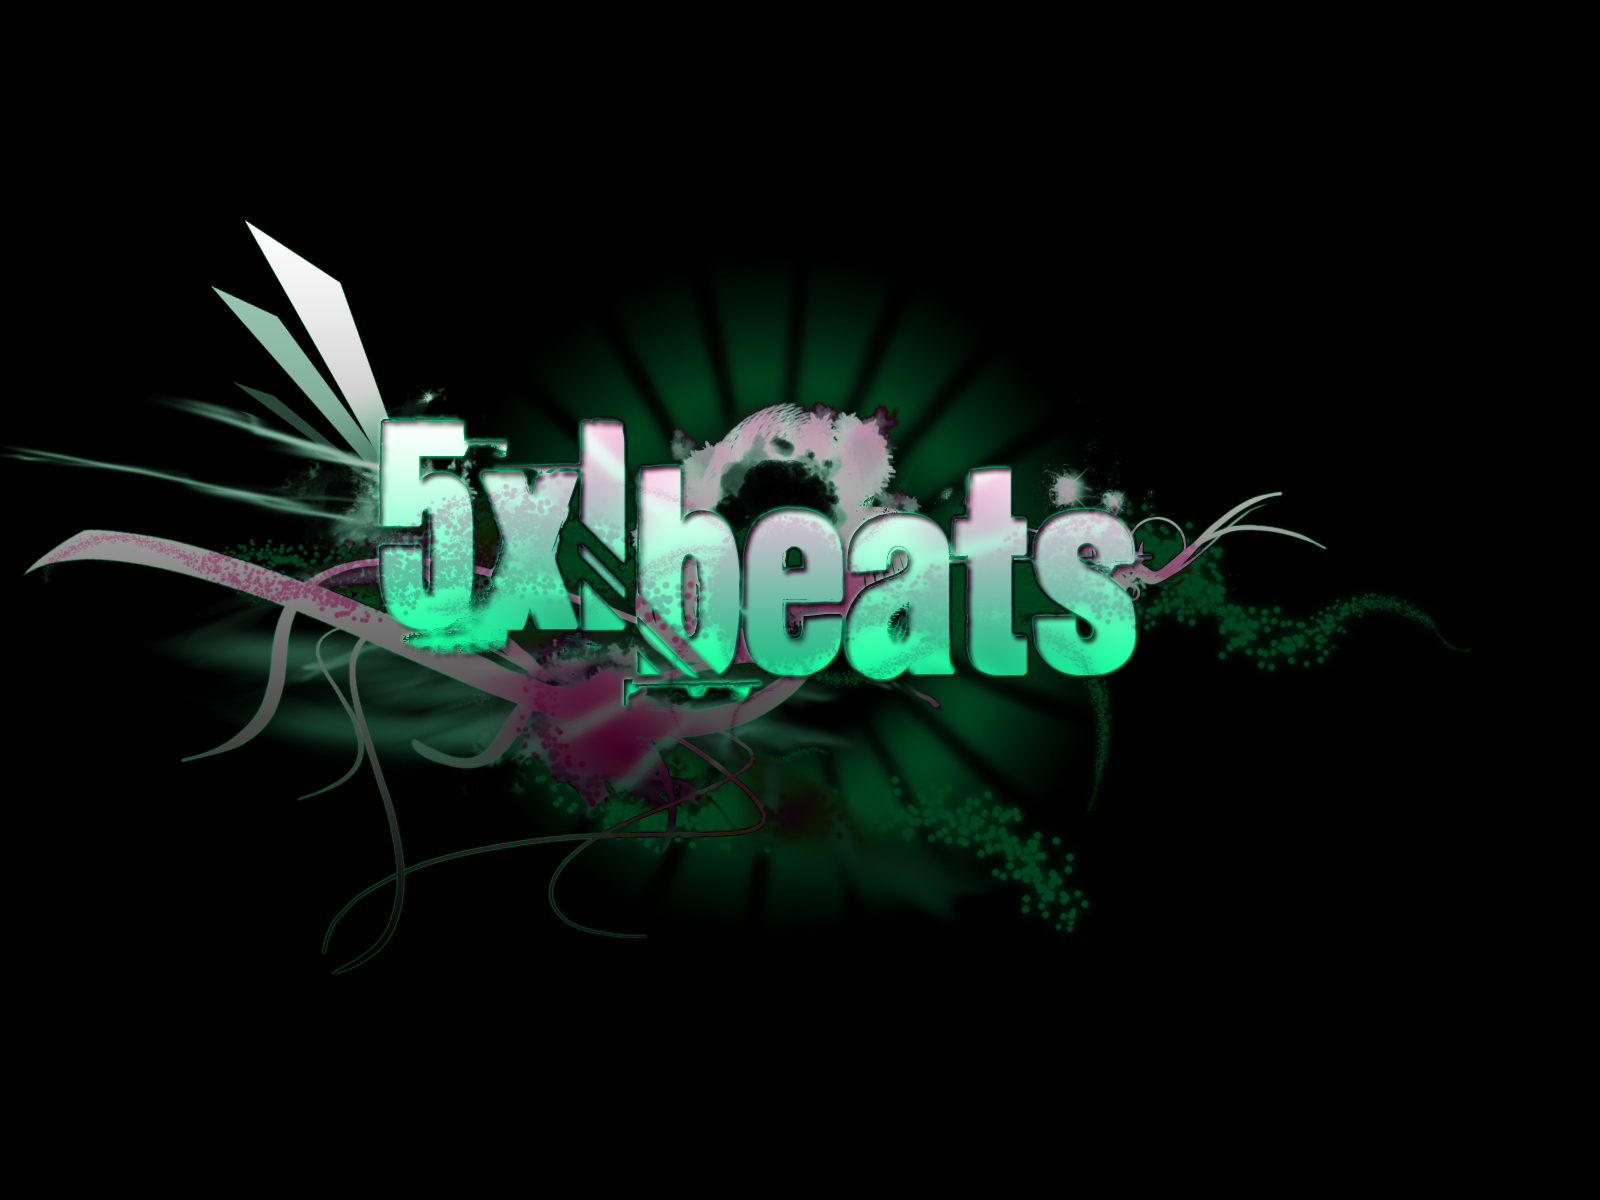 5 5Xl Beats HD Wallpapers